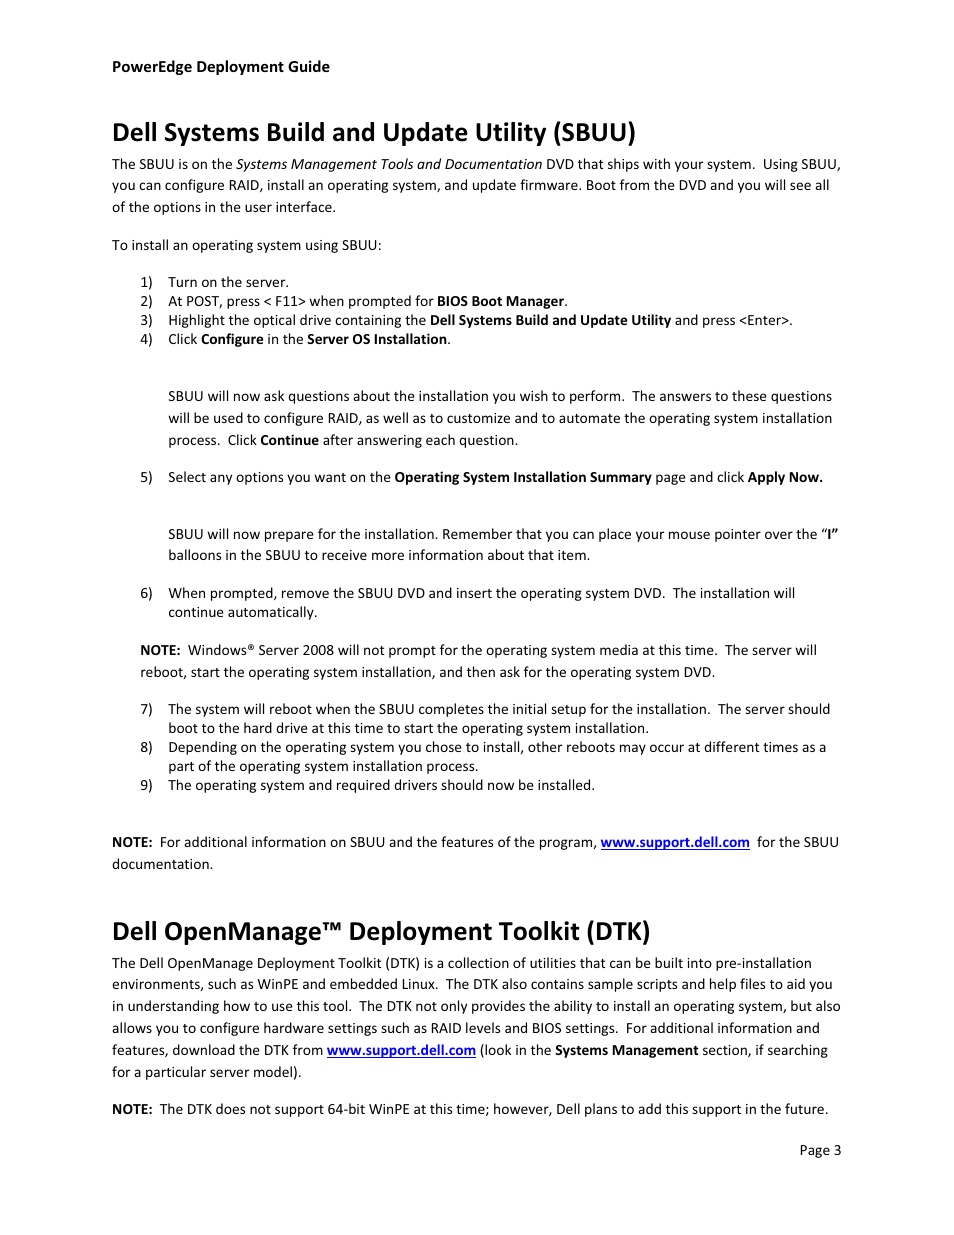 Dell systems build and update utility (sbuu), Dell openmanage